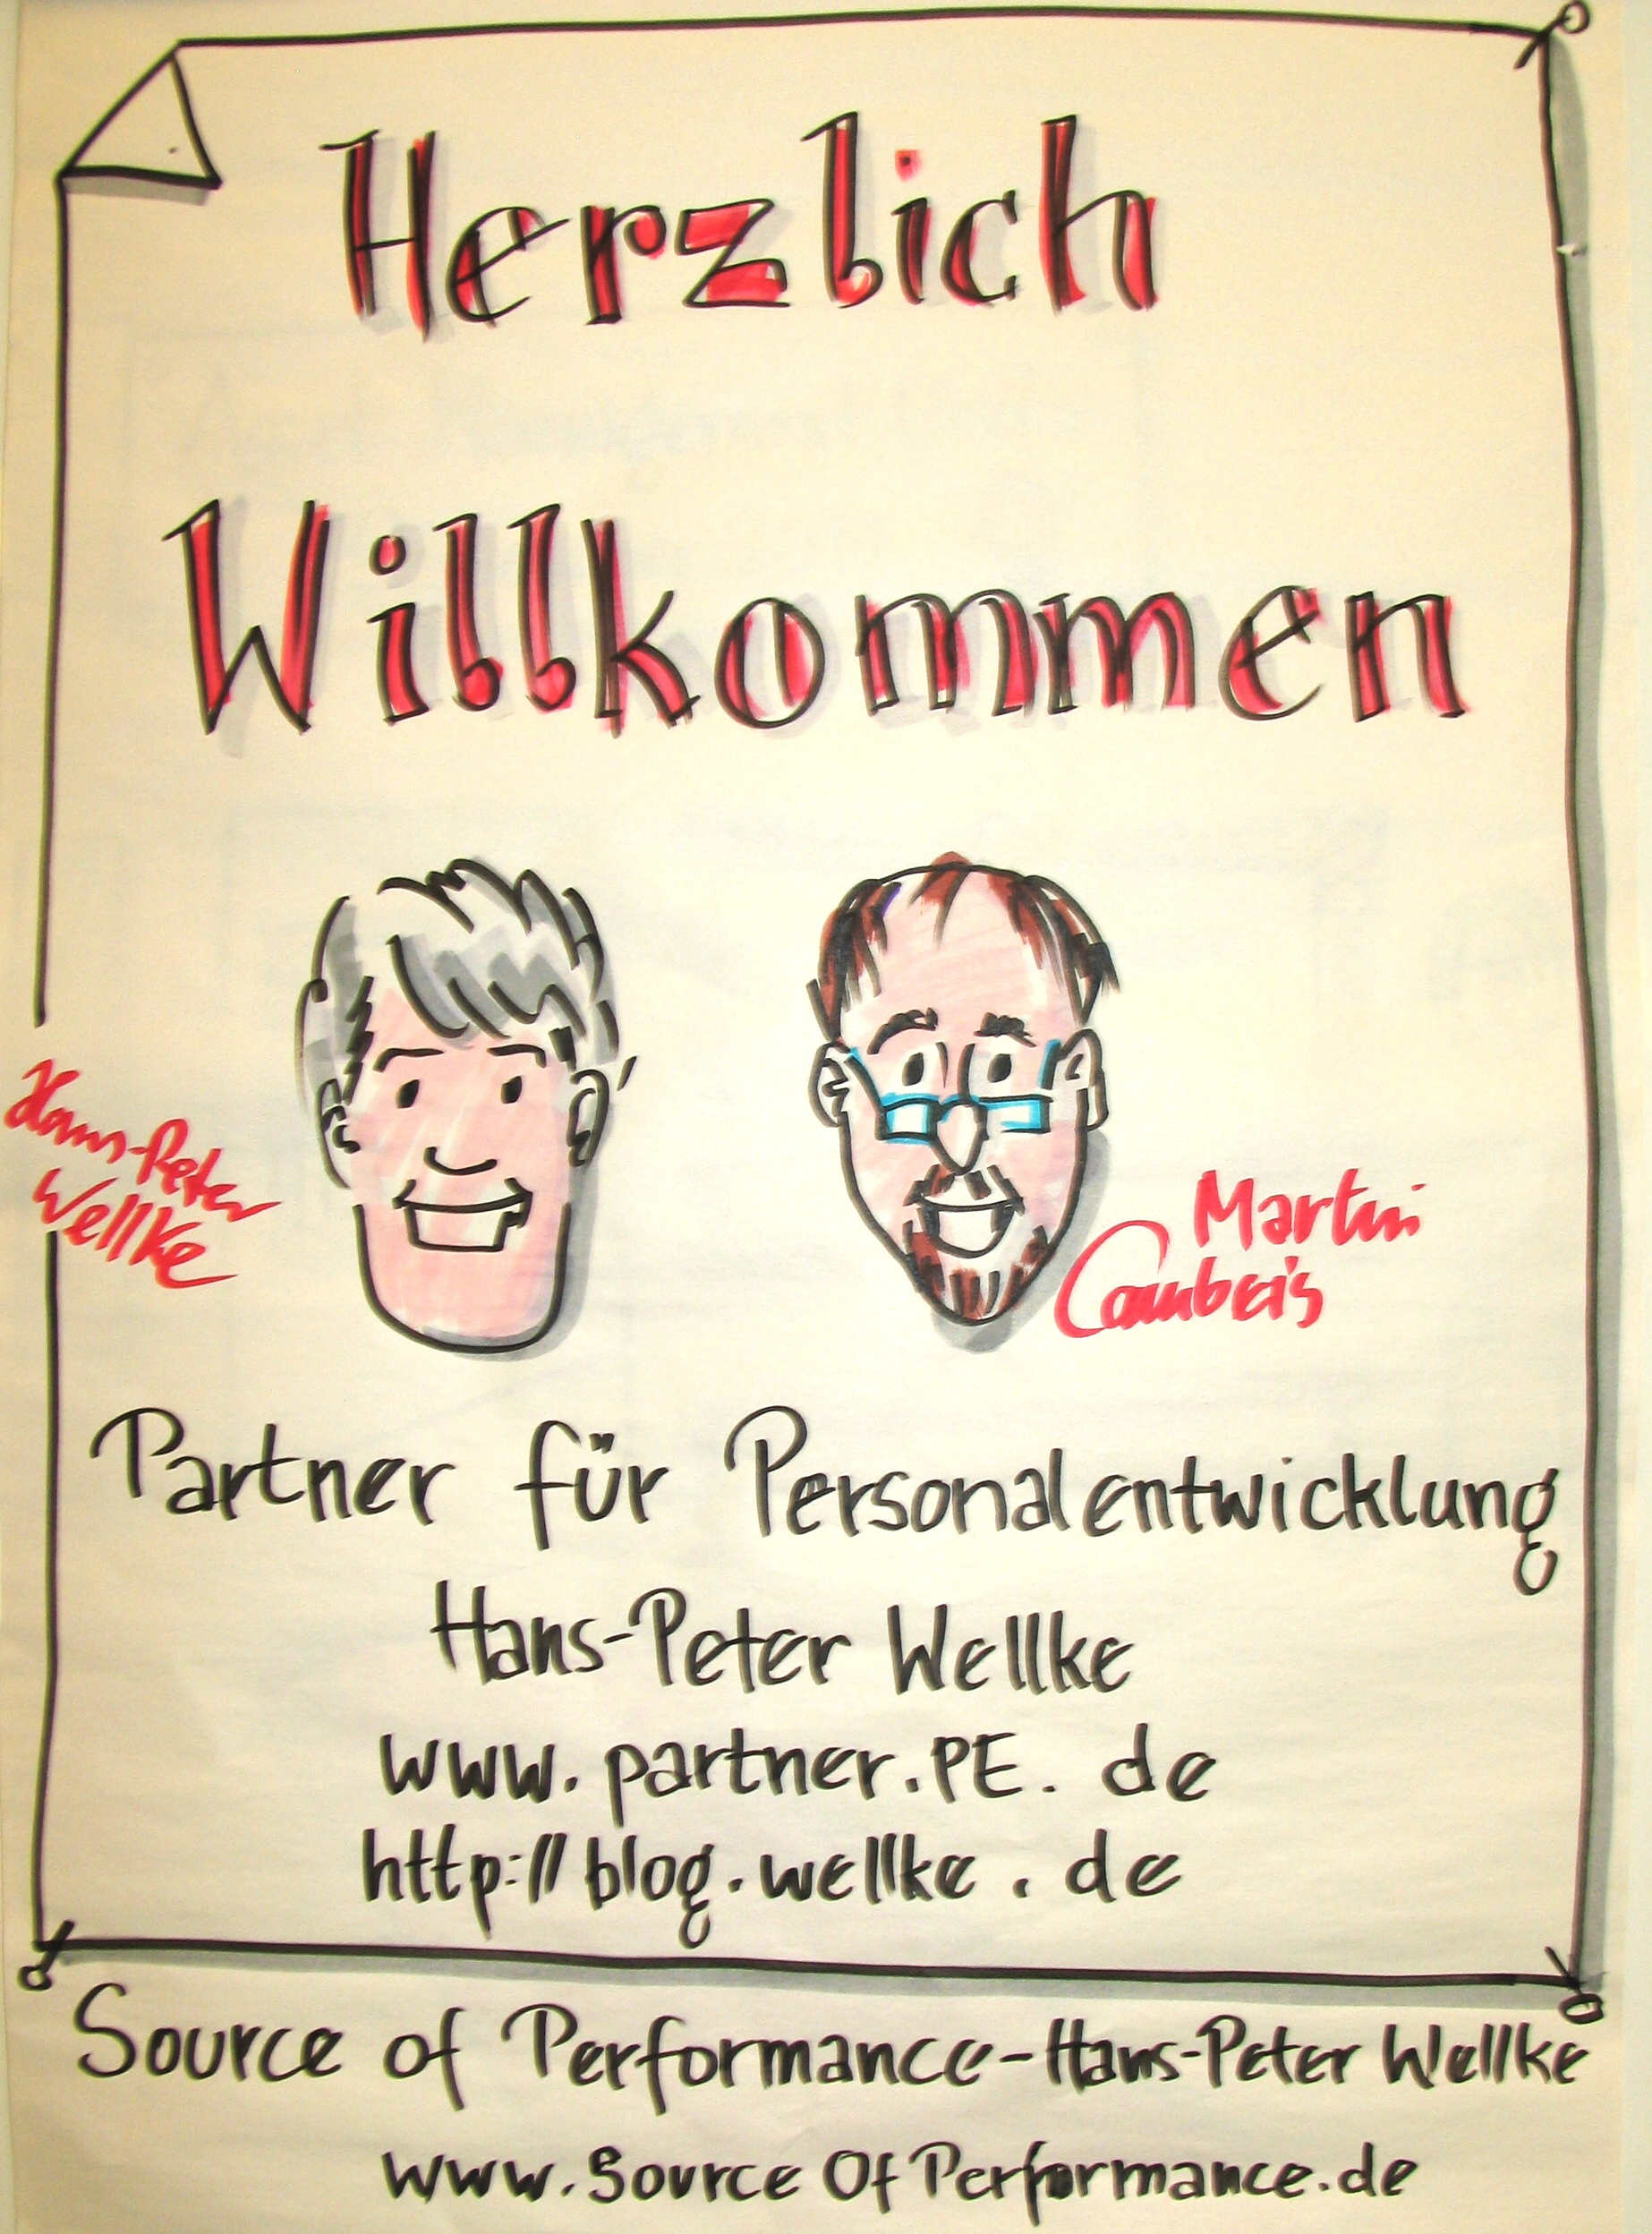 Martin Campeis und Hans-Peter Wellke_Workshopmoderation mit Cartoonist